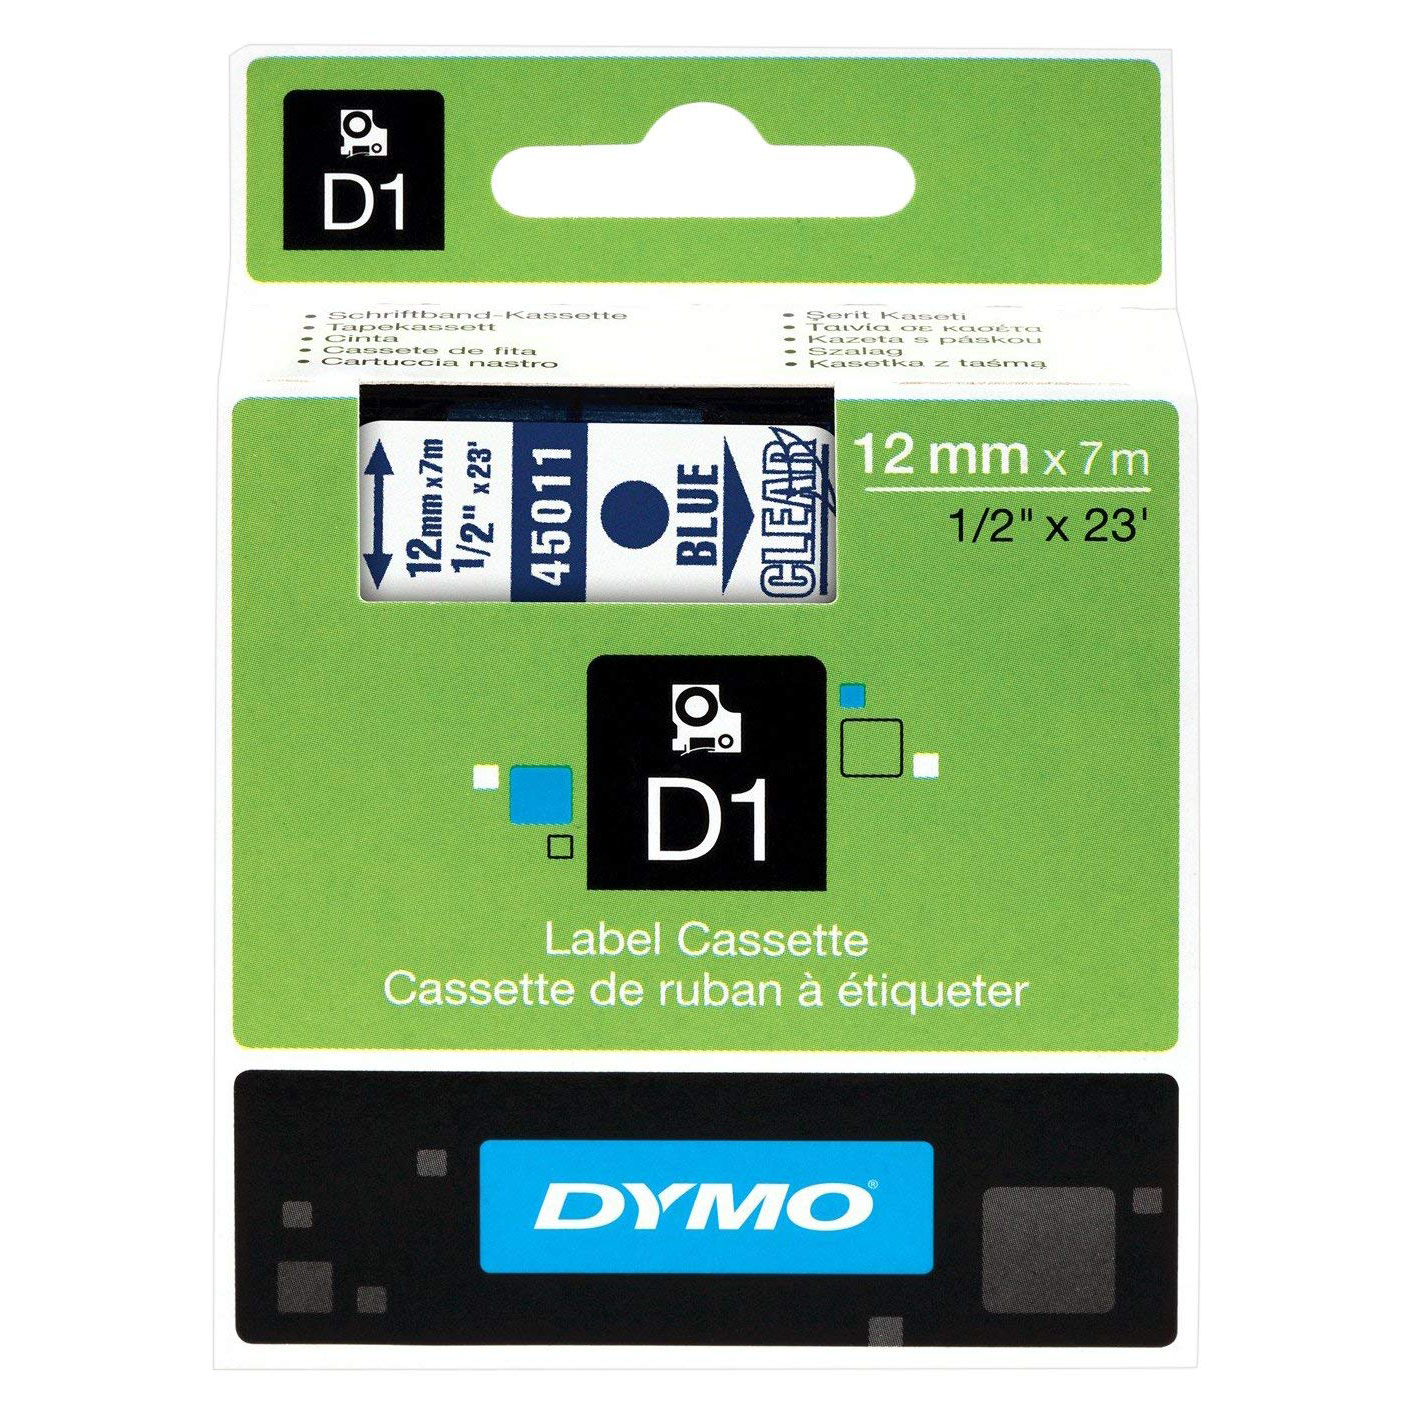 Dymo S0720510 (45011) D1 Standard Self-Adhesive Label Tape 12mm x 7m - Blue on Transparent (pc)